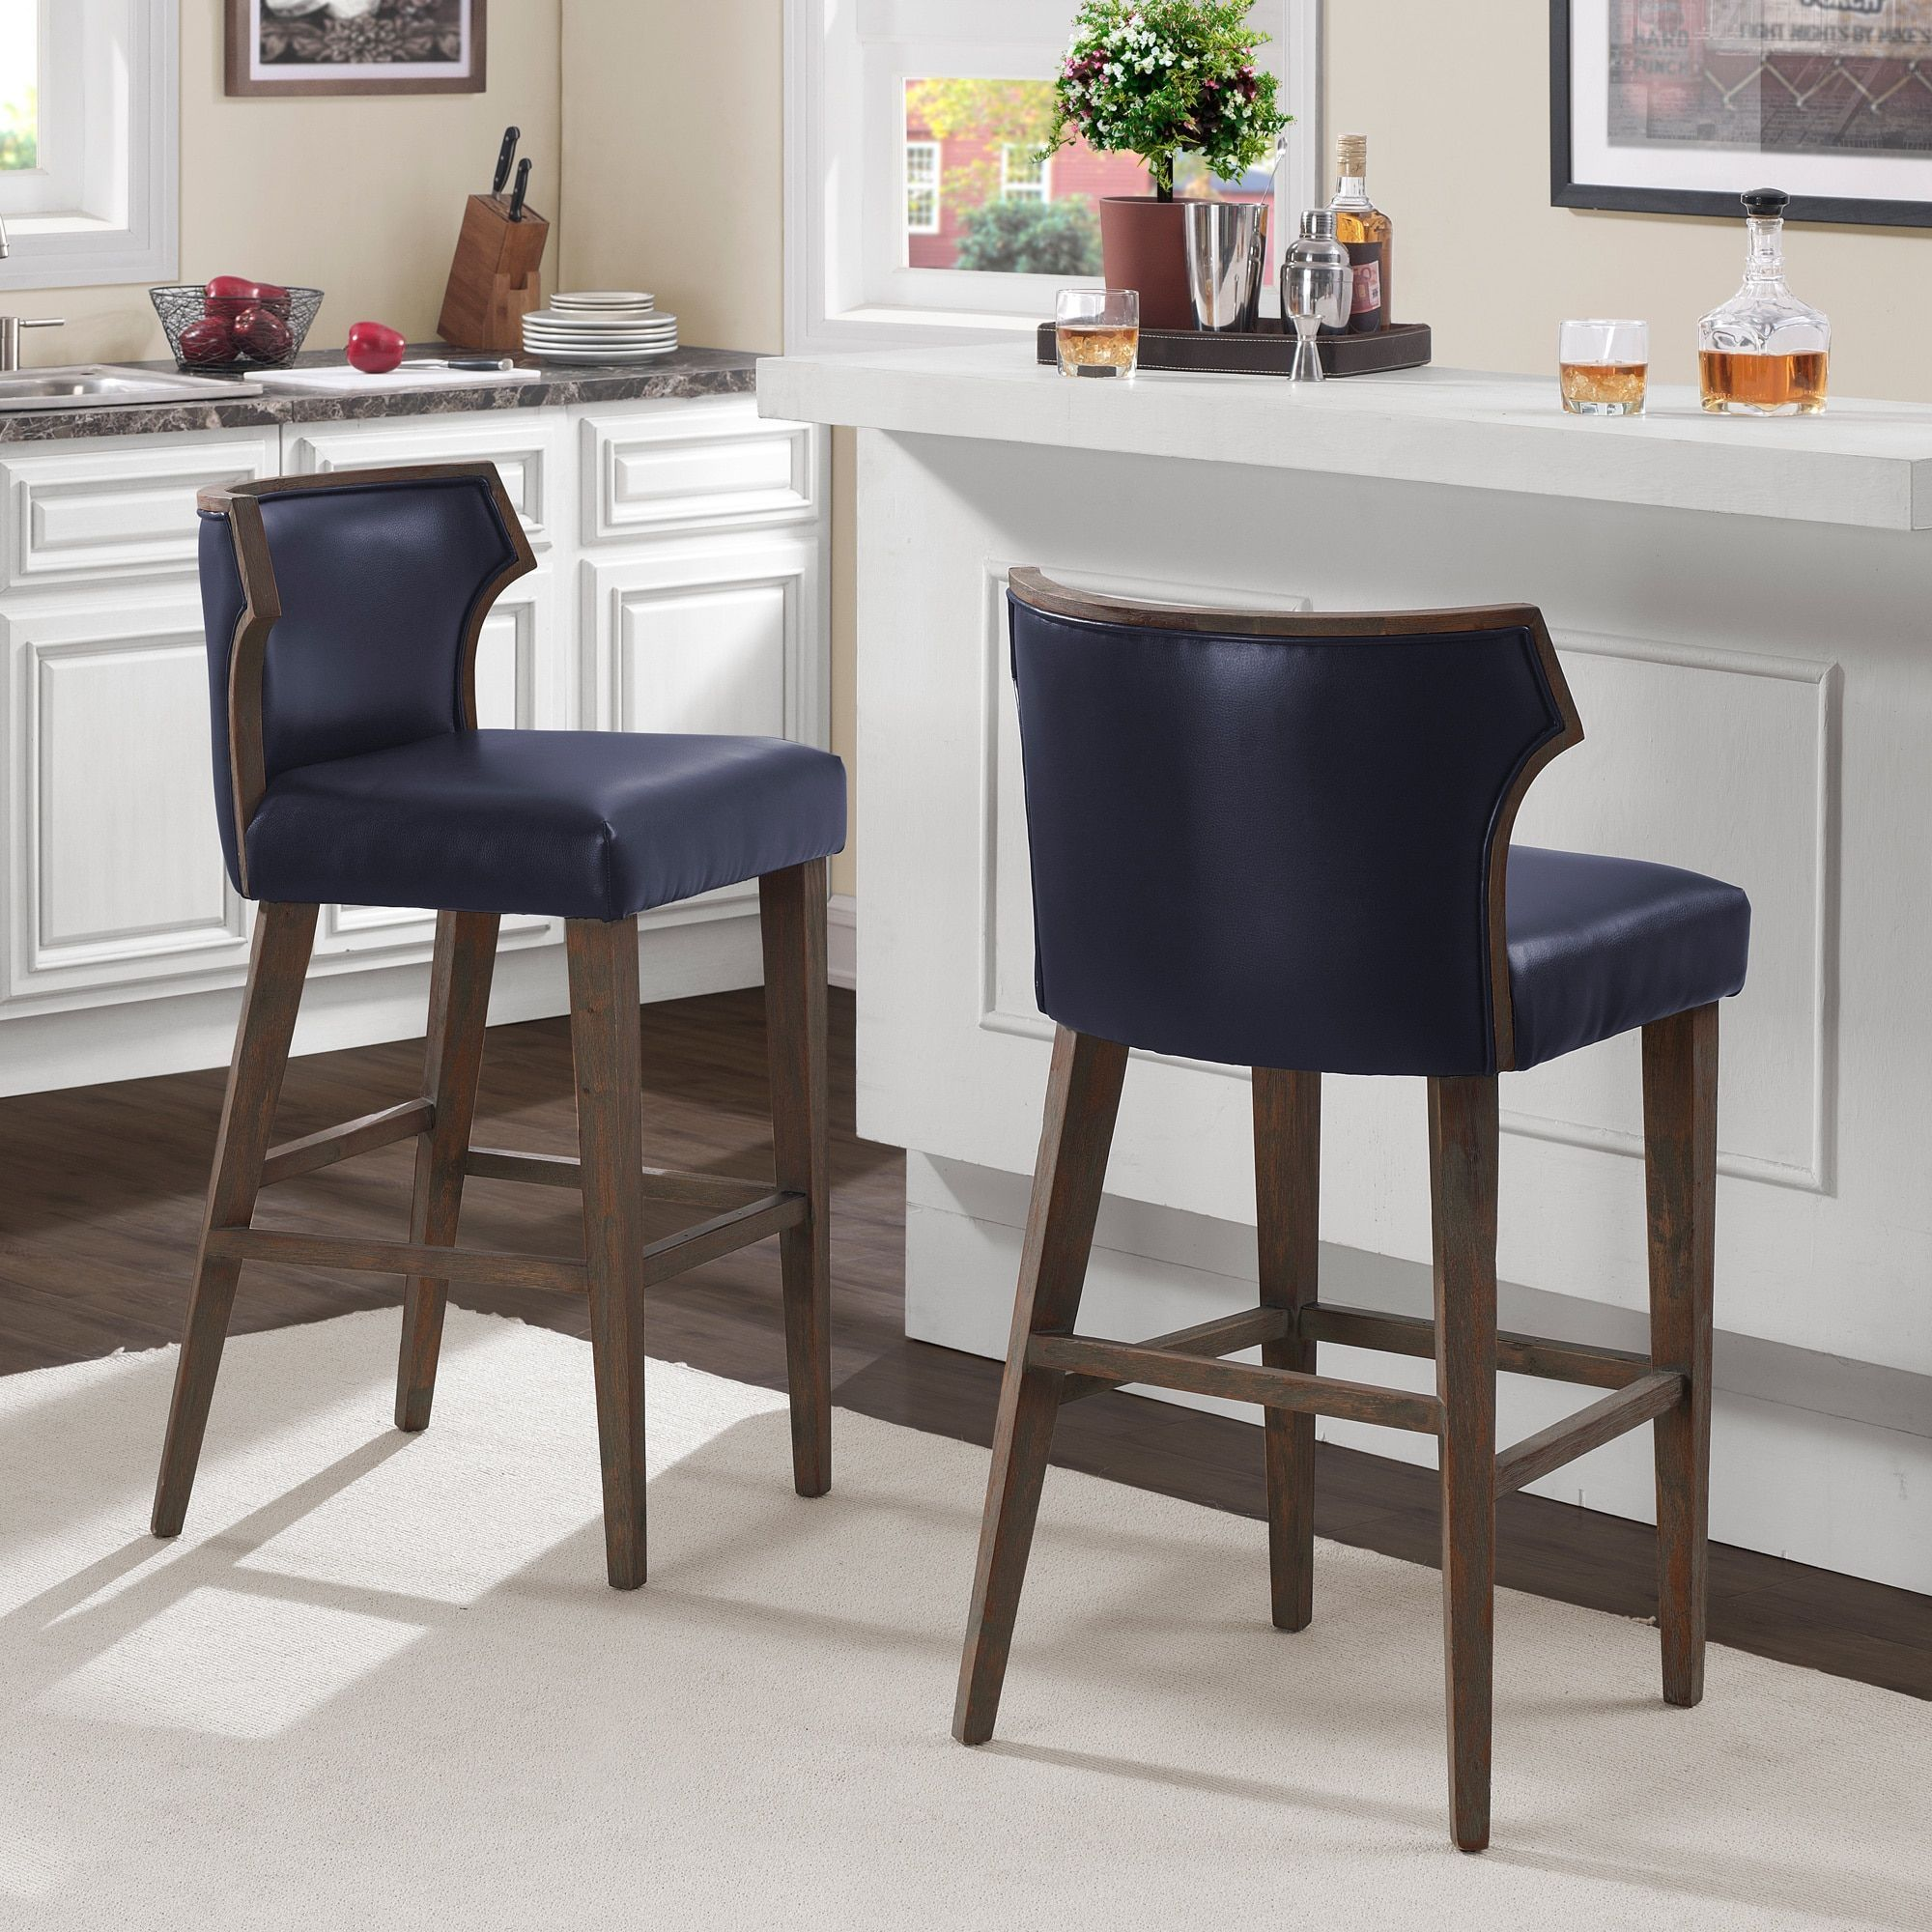 navy wonderful with bar counter top amazon swivel stool duck backs in ideas gray pictures aqua metal chairs surripui high black wood sydney and blue egg online stools leather